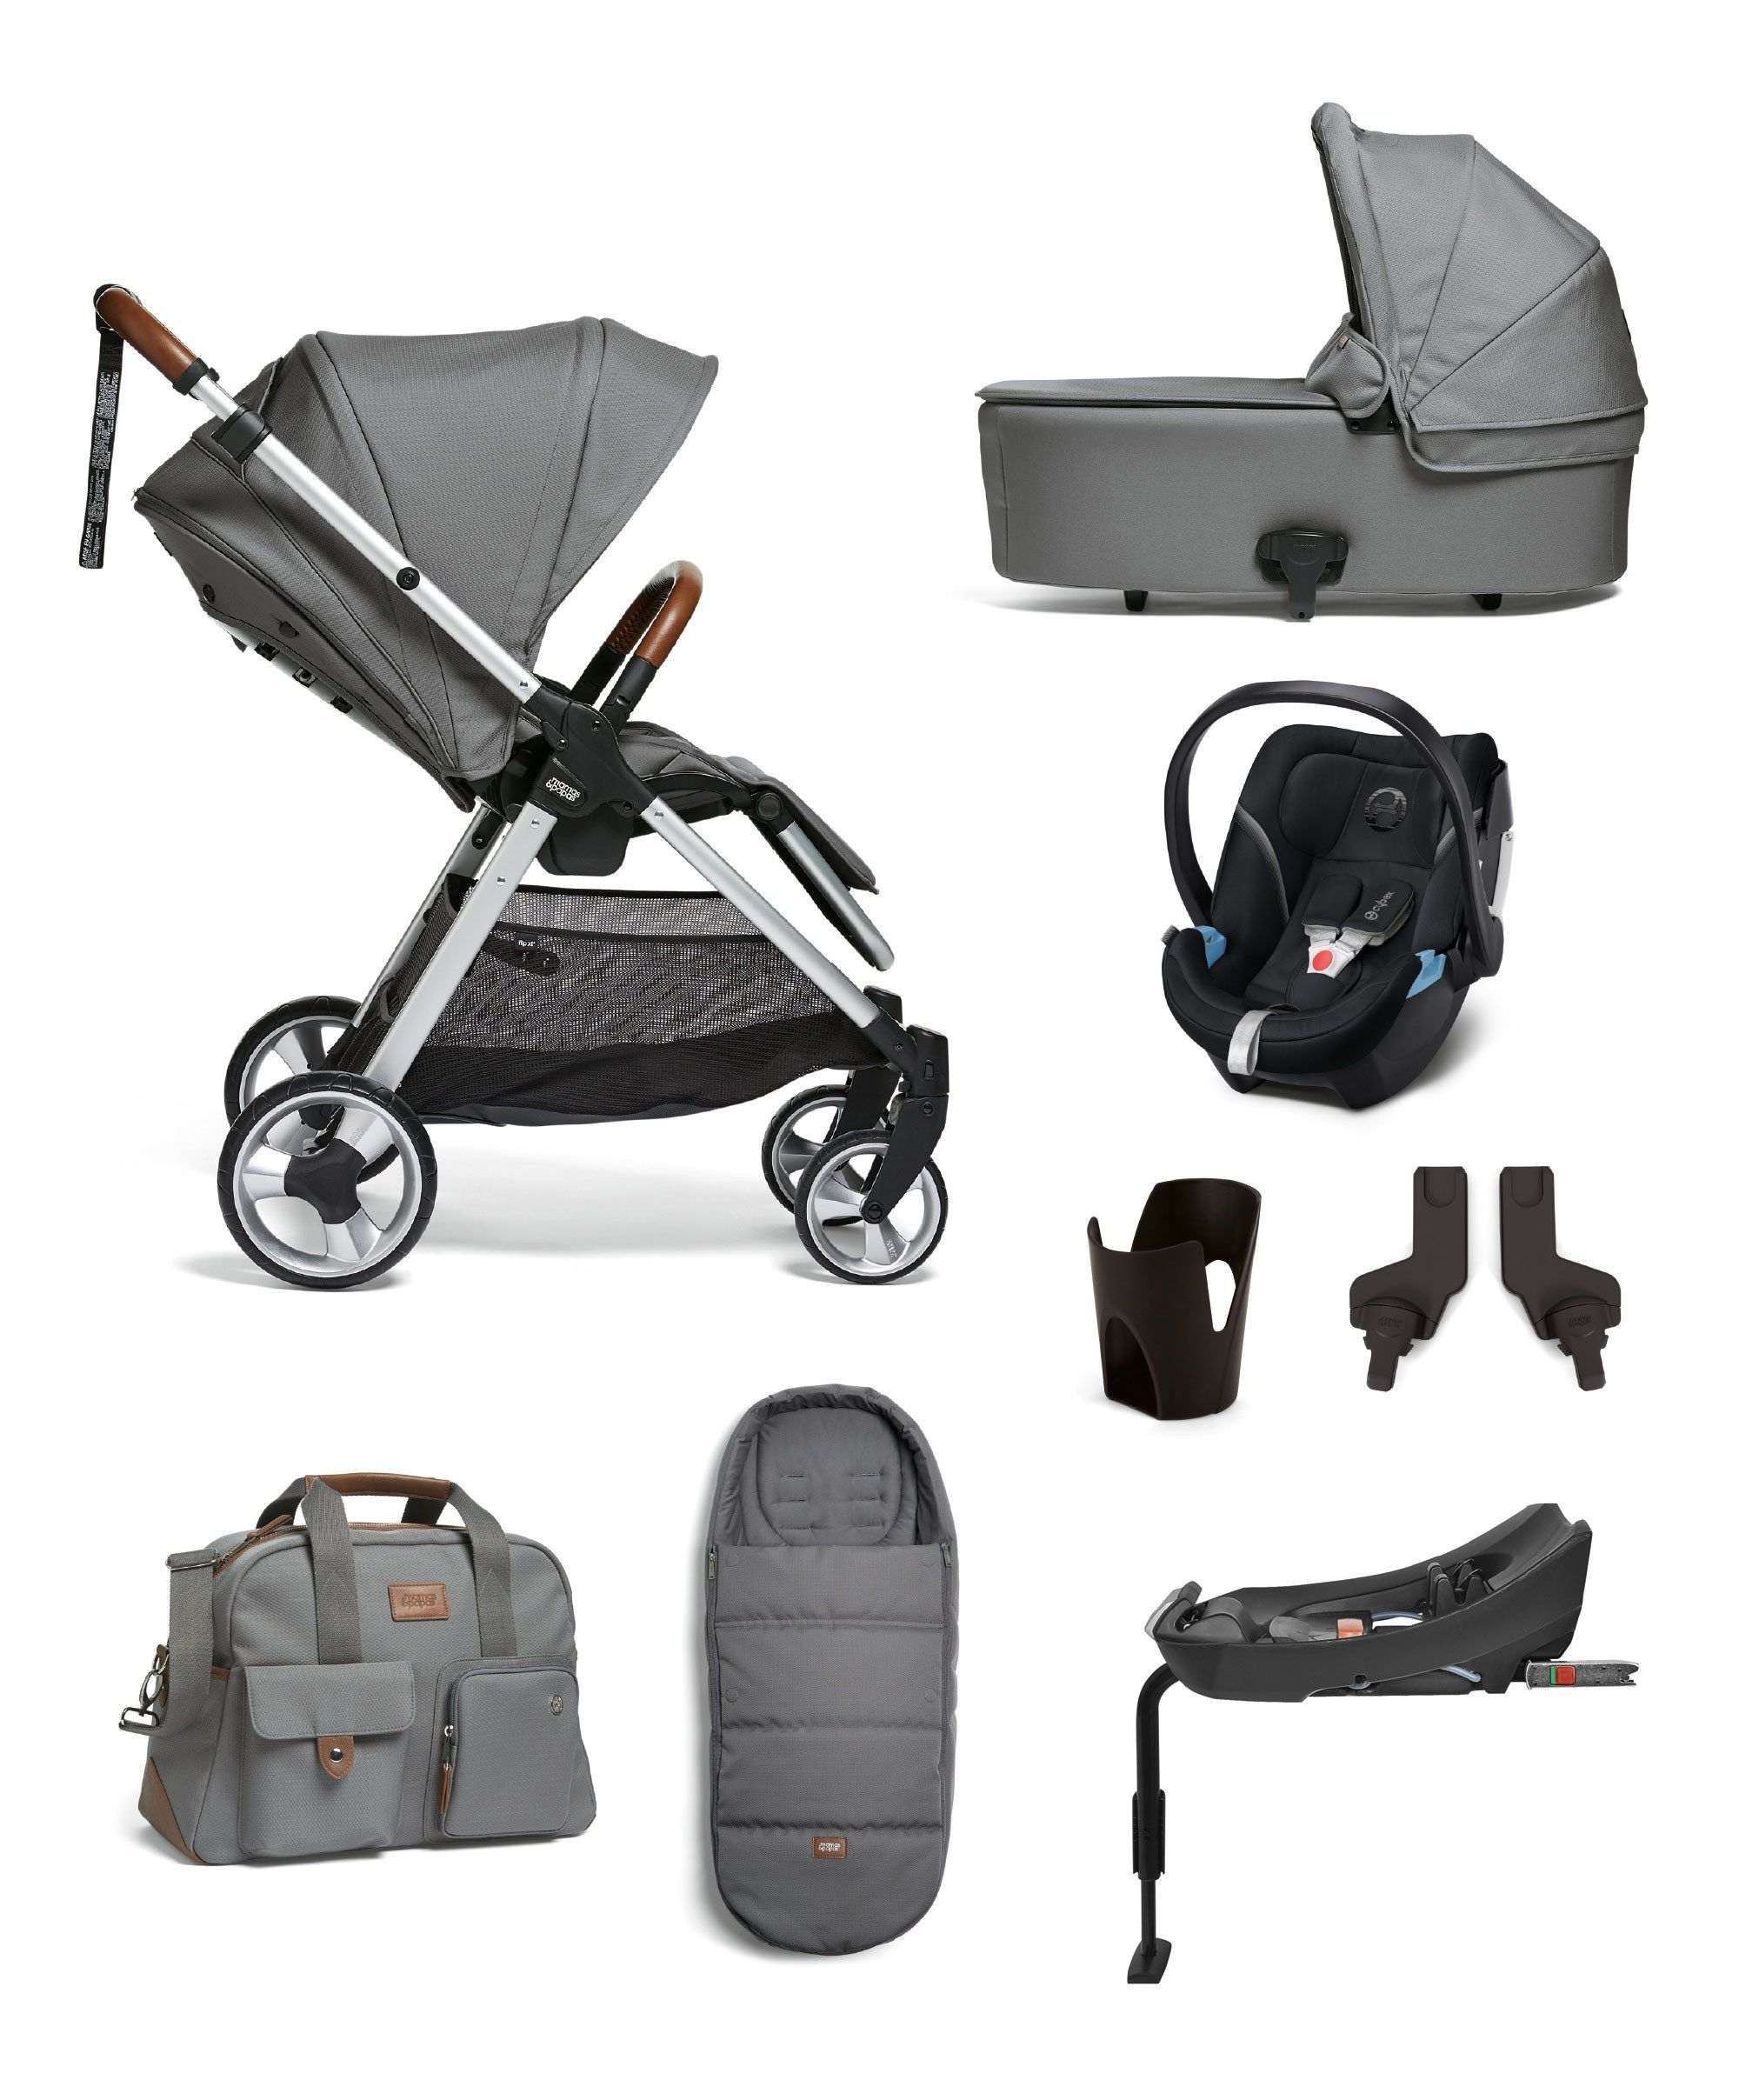 Designed for the smallest of spaces & ultimate portability